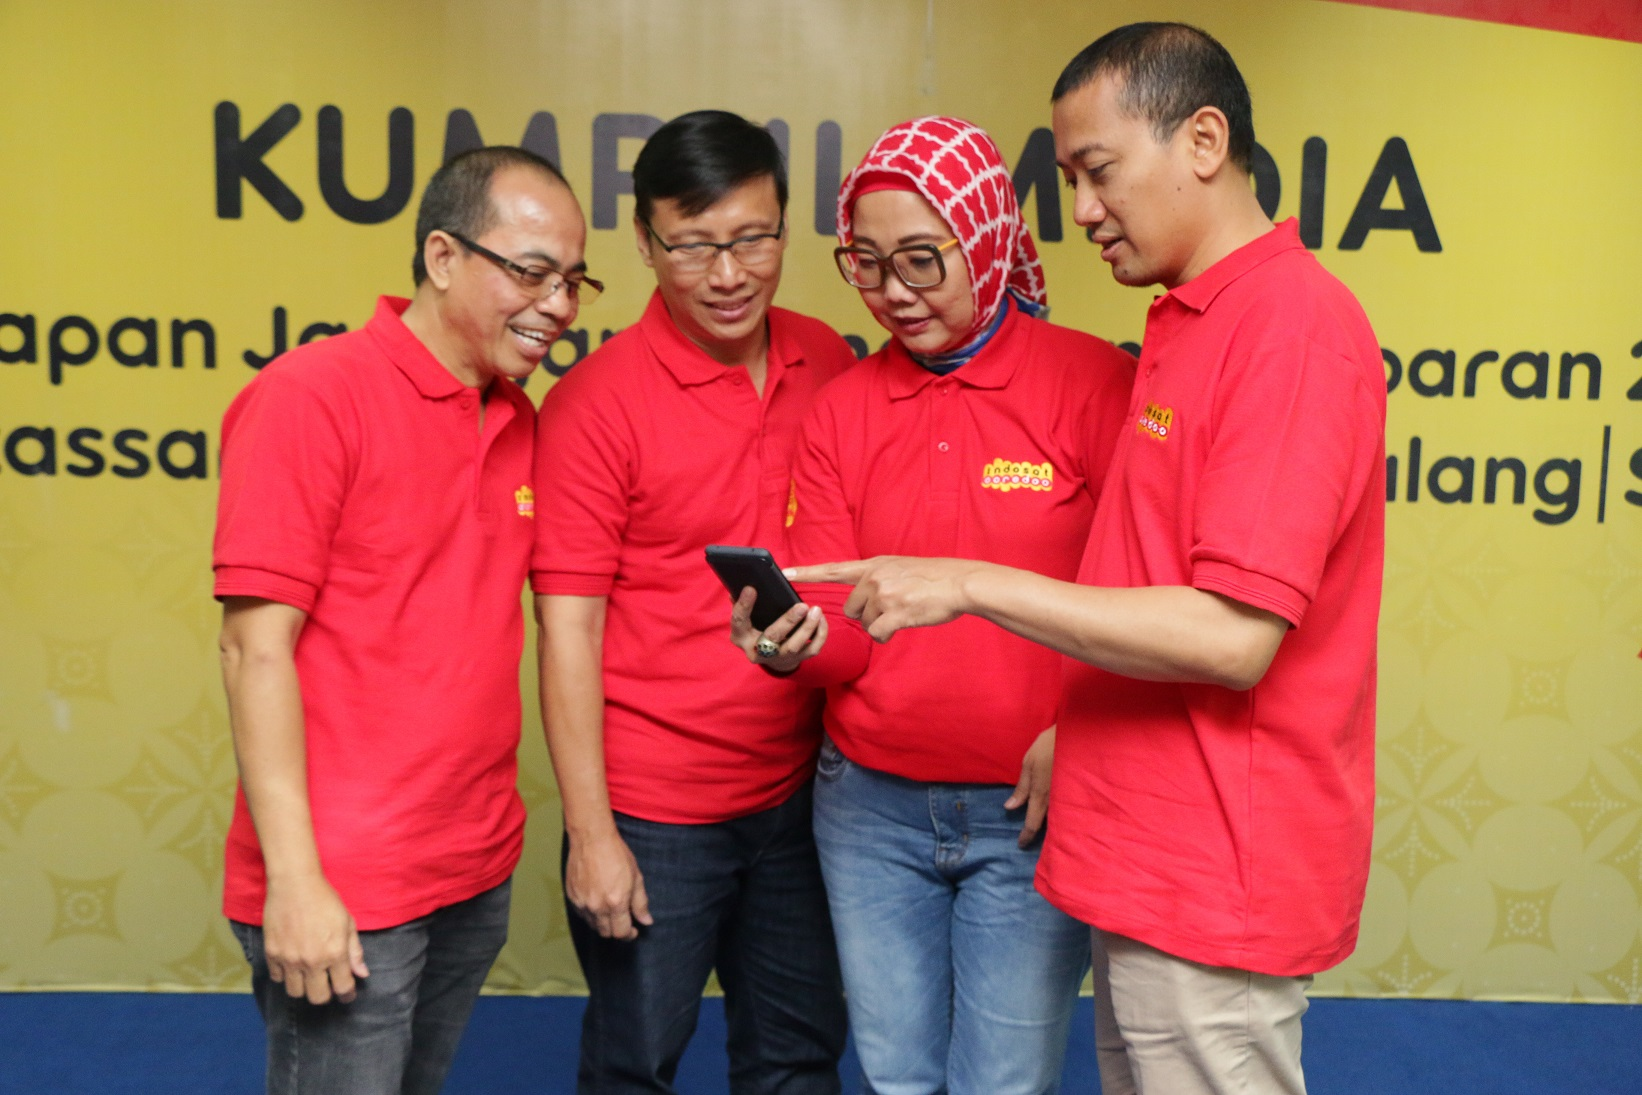 SVP-Head Corporate Communications Indosat Ooredoo Turina Farouk